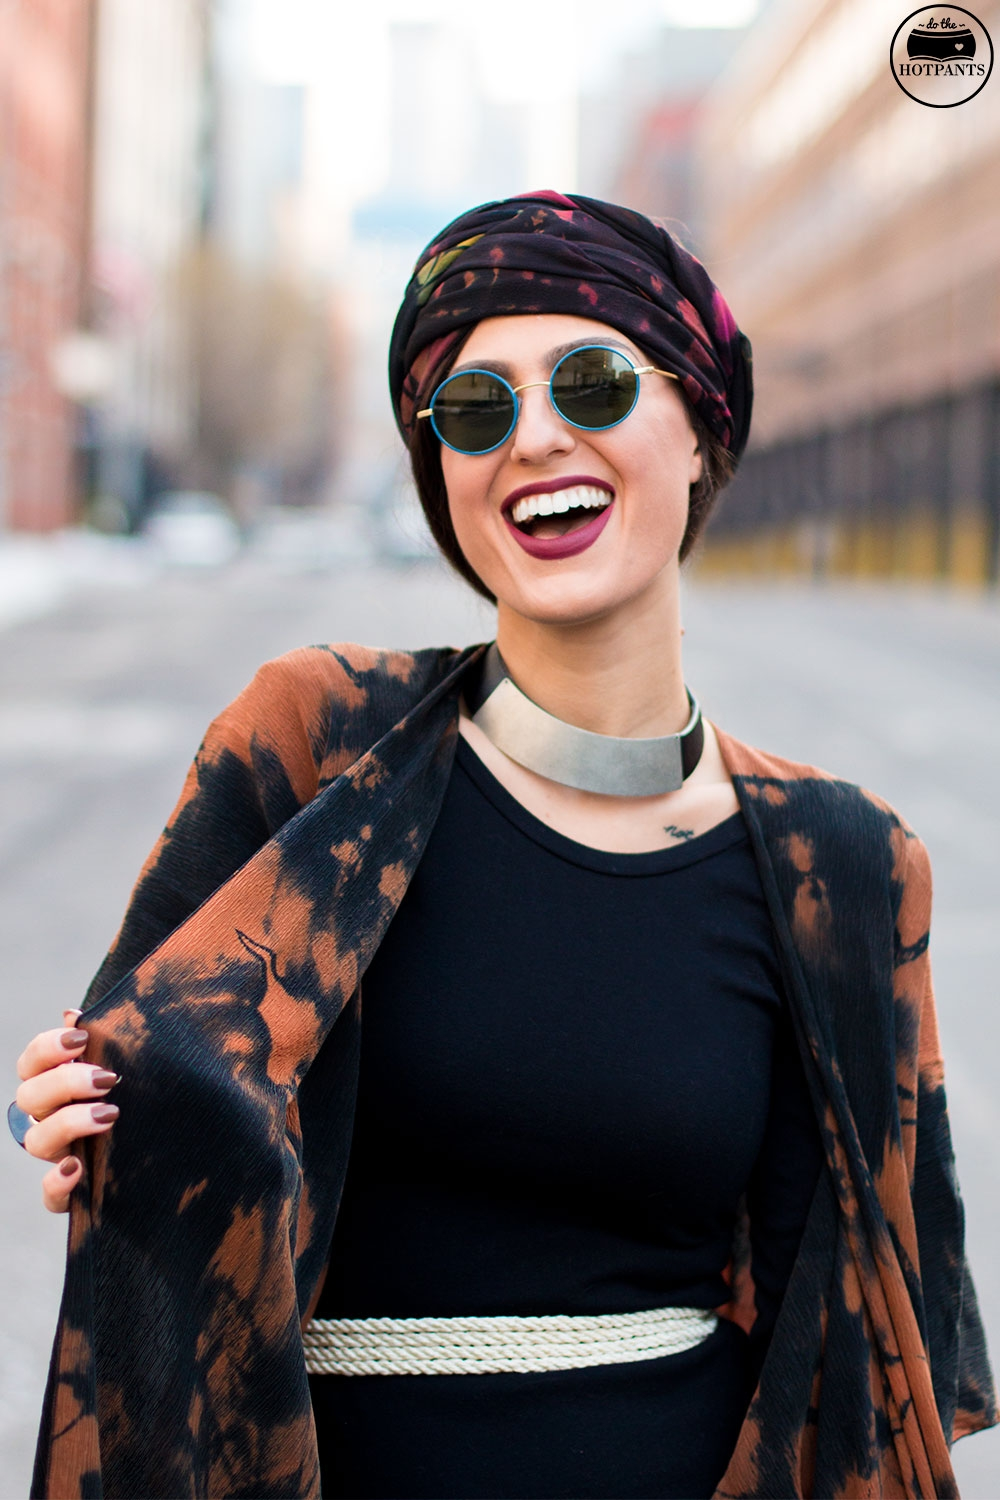 Do The Hotpants Dana Suchow Winter Fashion New York Streetstyle 2016 Tie Dye Hippy Outfit Turban Hijab IMG_6876